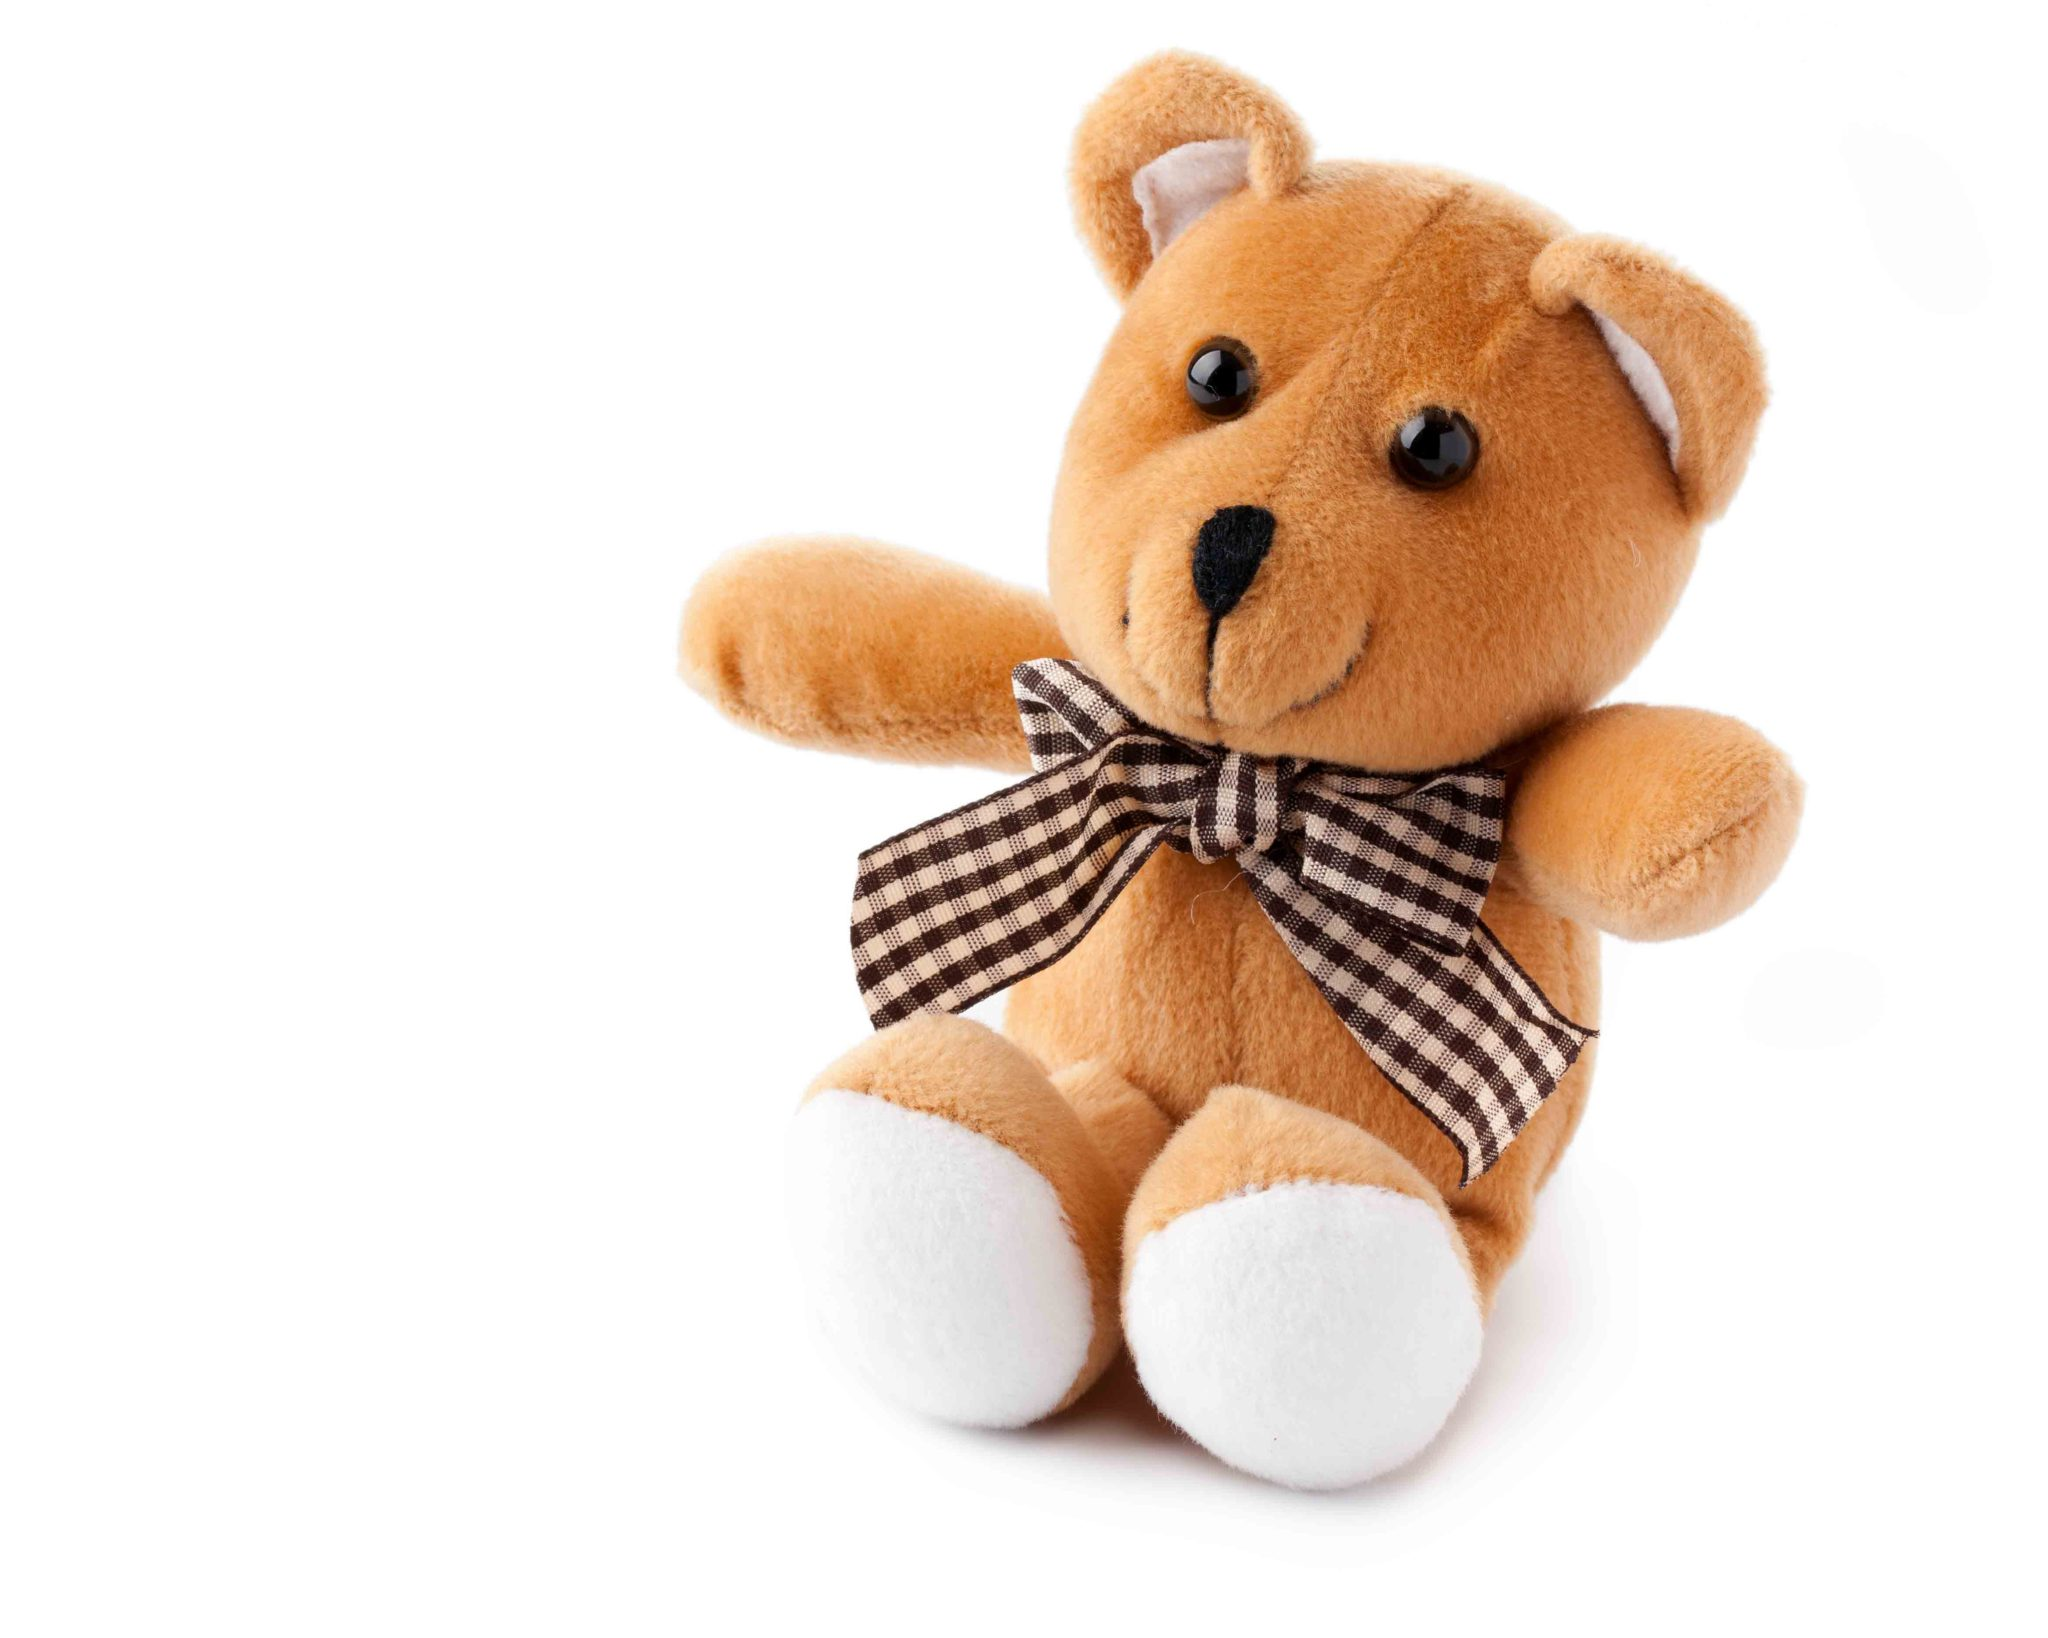 Learn How To Make Teddy Bear At Home